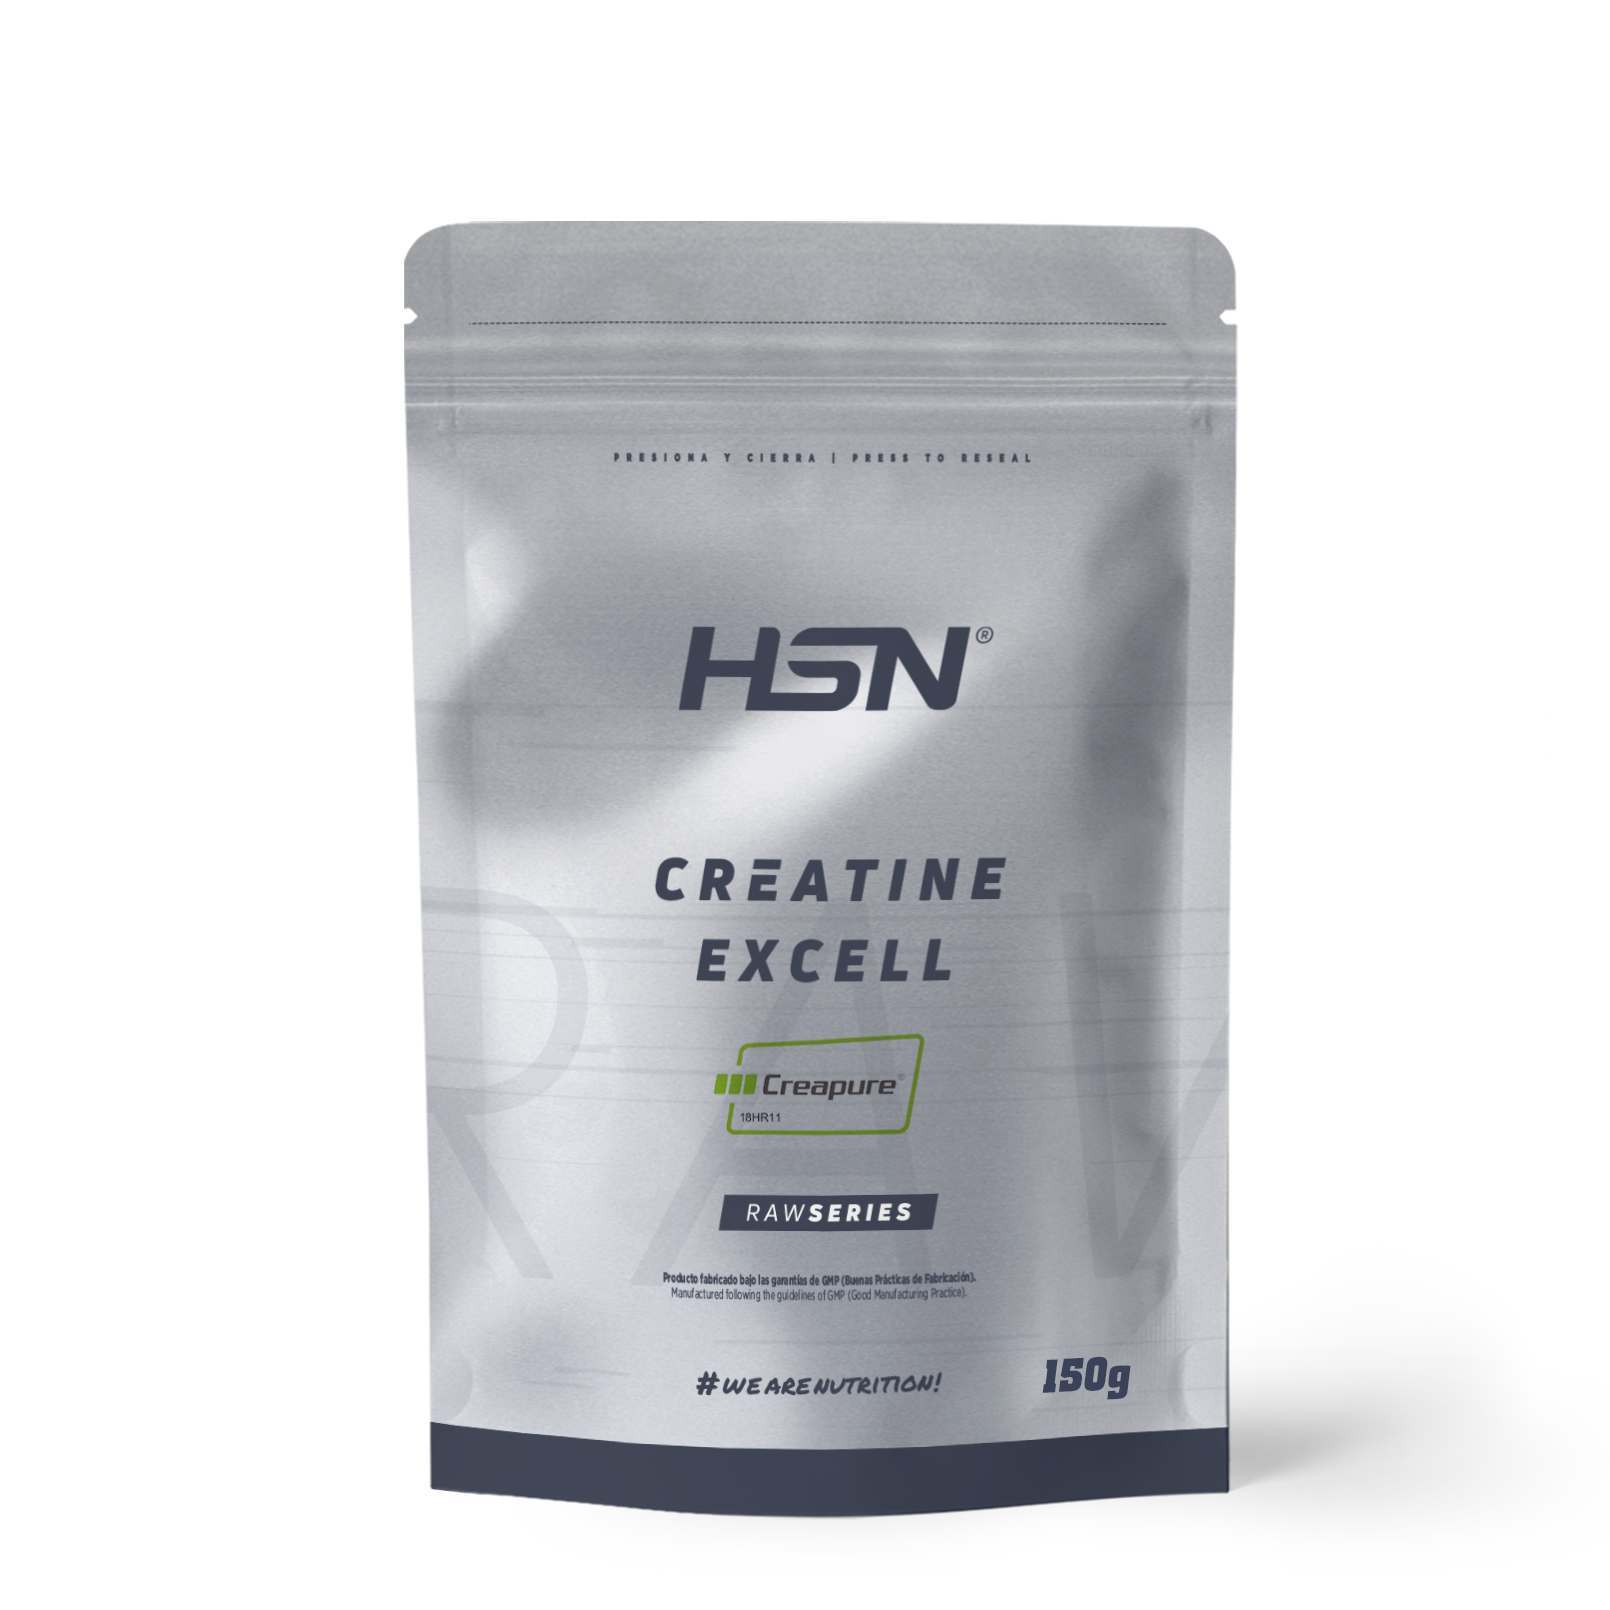 Creatine-excell-creapure-150g